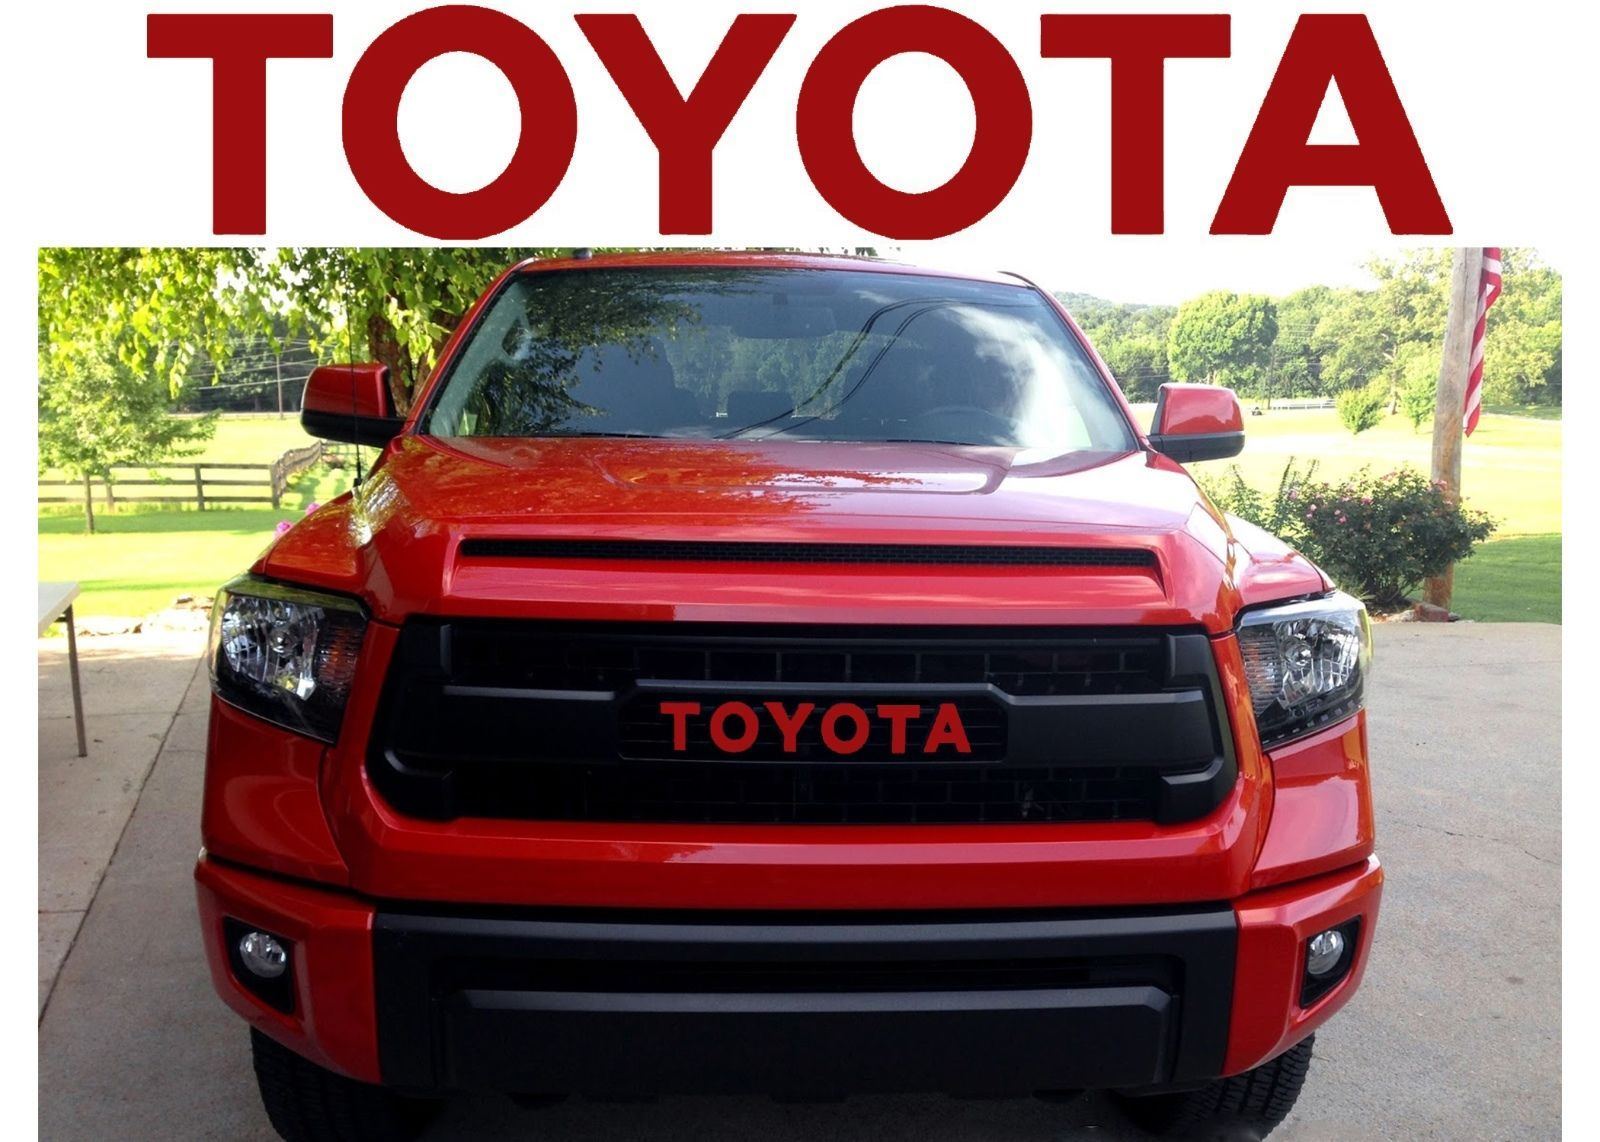 Cool Awesome Trd Pro Grille Barcelona Red Vinyl Decal Inserts For 2015 2017 Toyota Tundra New 2017 2018 Check More At Http 24auto Tk Toyota Tundra Toyota Trd